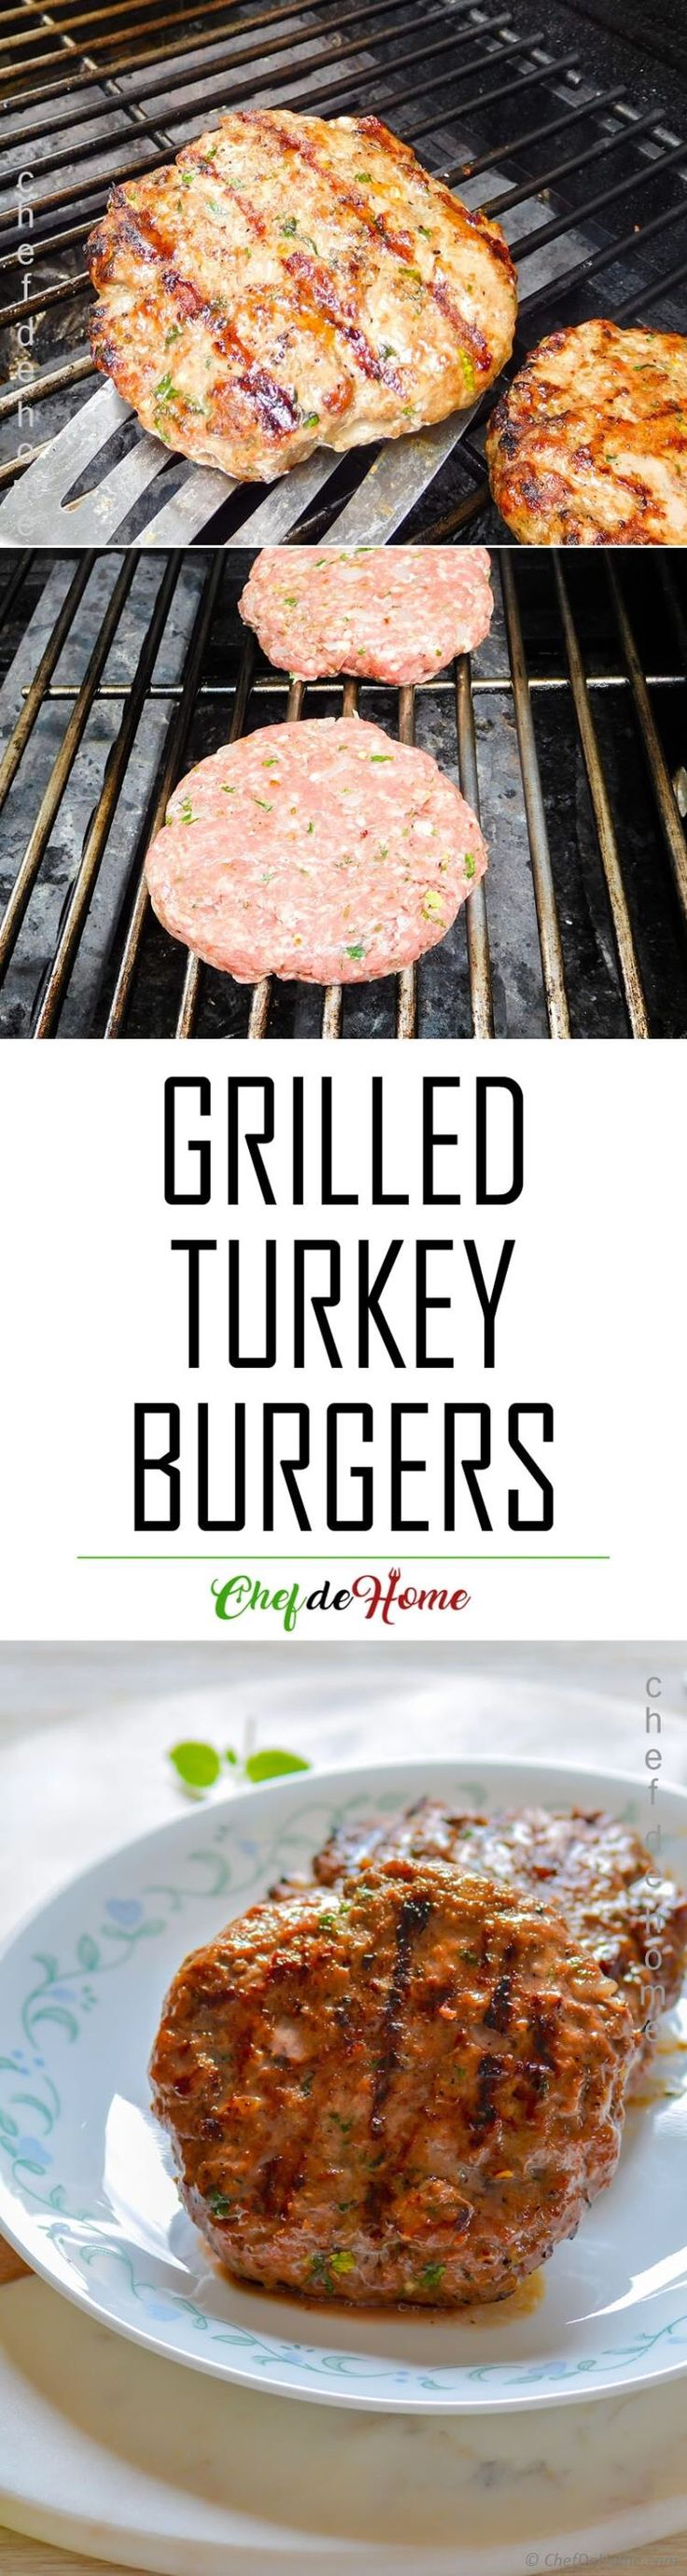 How to Make Grilled Turkey Burger - This grilling season cook perfectly moist, homemade grilled turkey burgers!